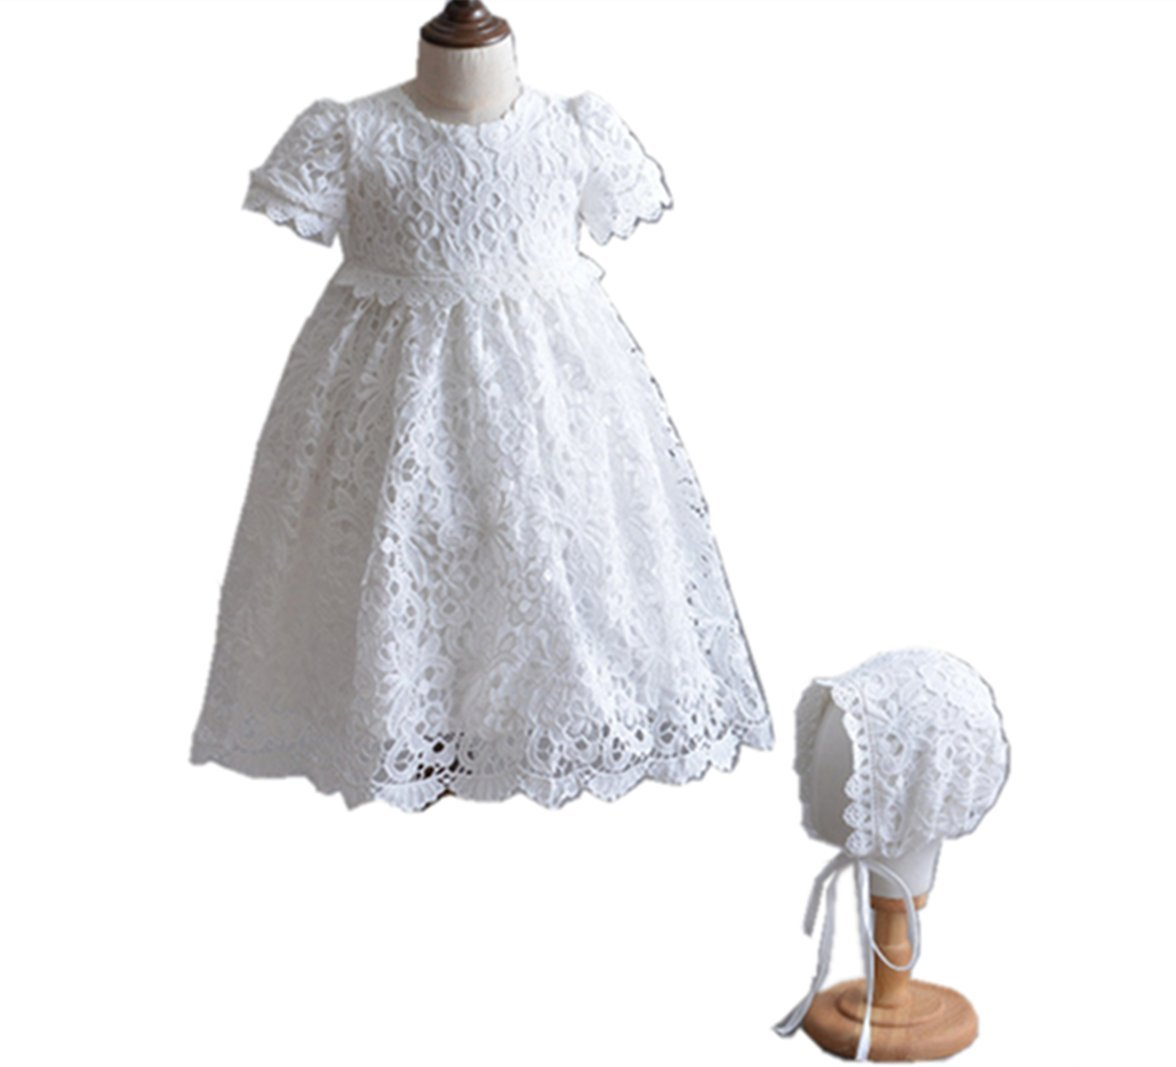 HX Baby Girl's Princess Lace Short Sleeve Christening Baptism Gowns Long Dress with Bonnet